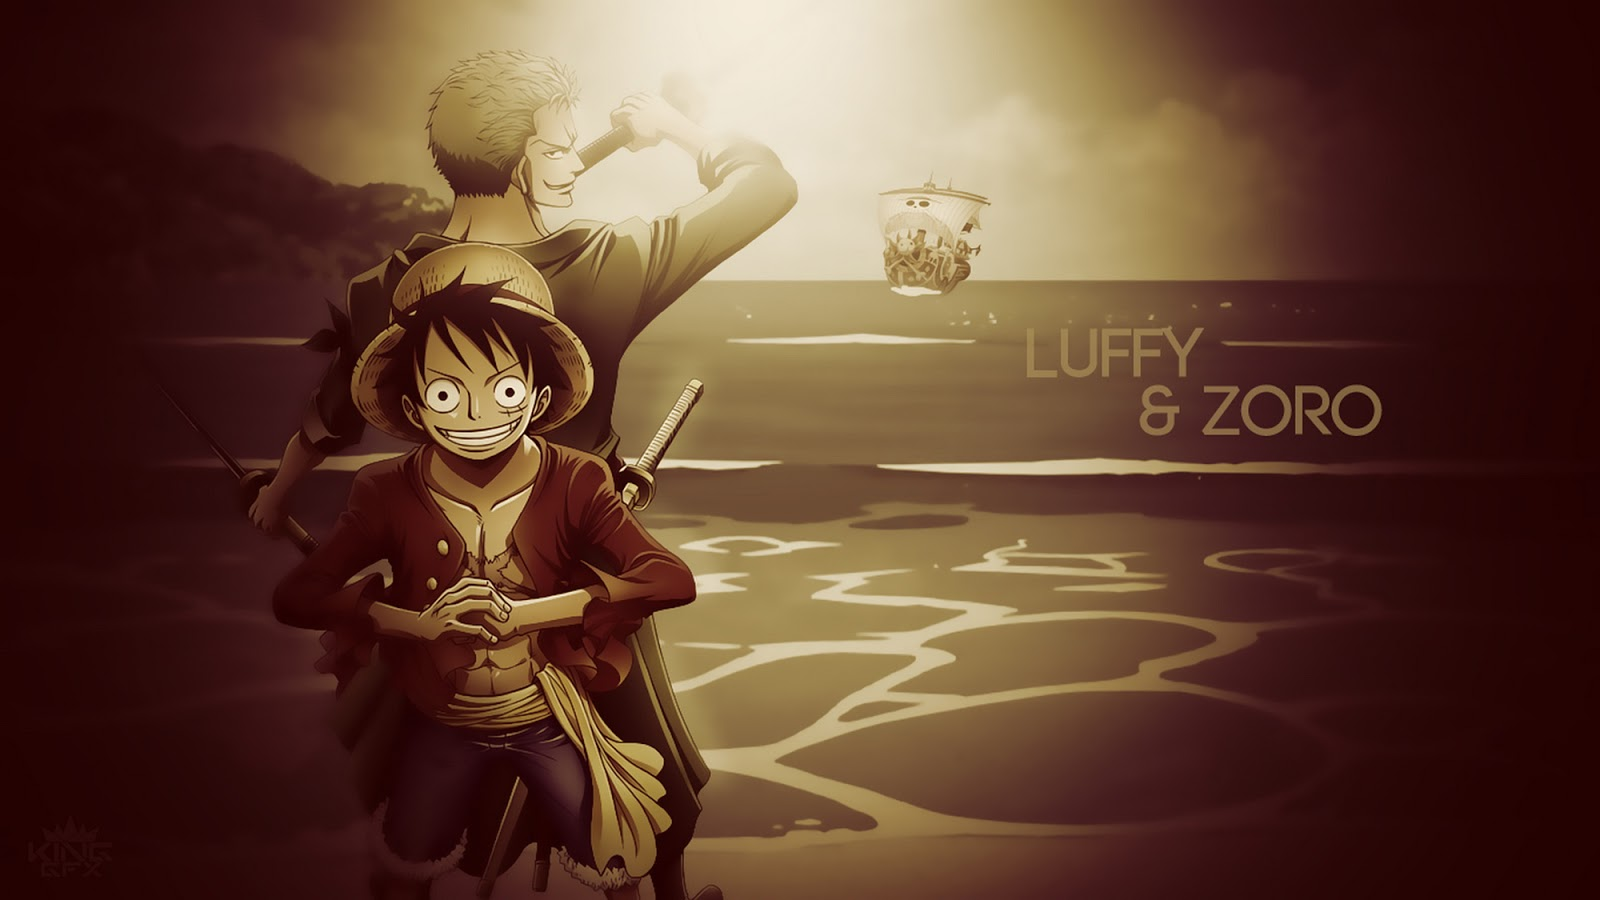 Free Download Monkey D Luffy Roronoa Zoro One Piece Straw Hat Anime Hd Wallpaper 1600x900 For Your Desktop Mobile Tablet Explore 49 Luffy Hd Wallpaper Monkey D Luffy Wallpapers